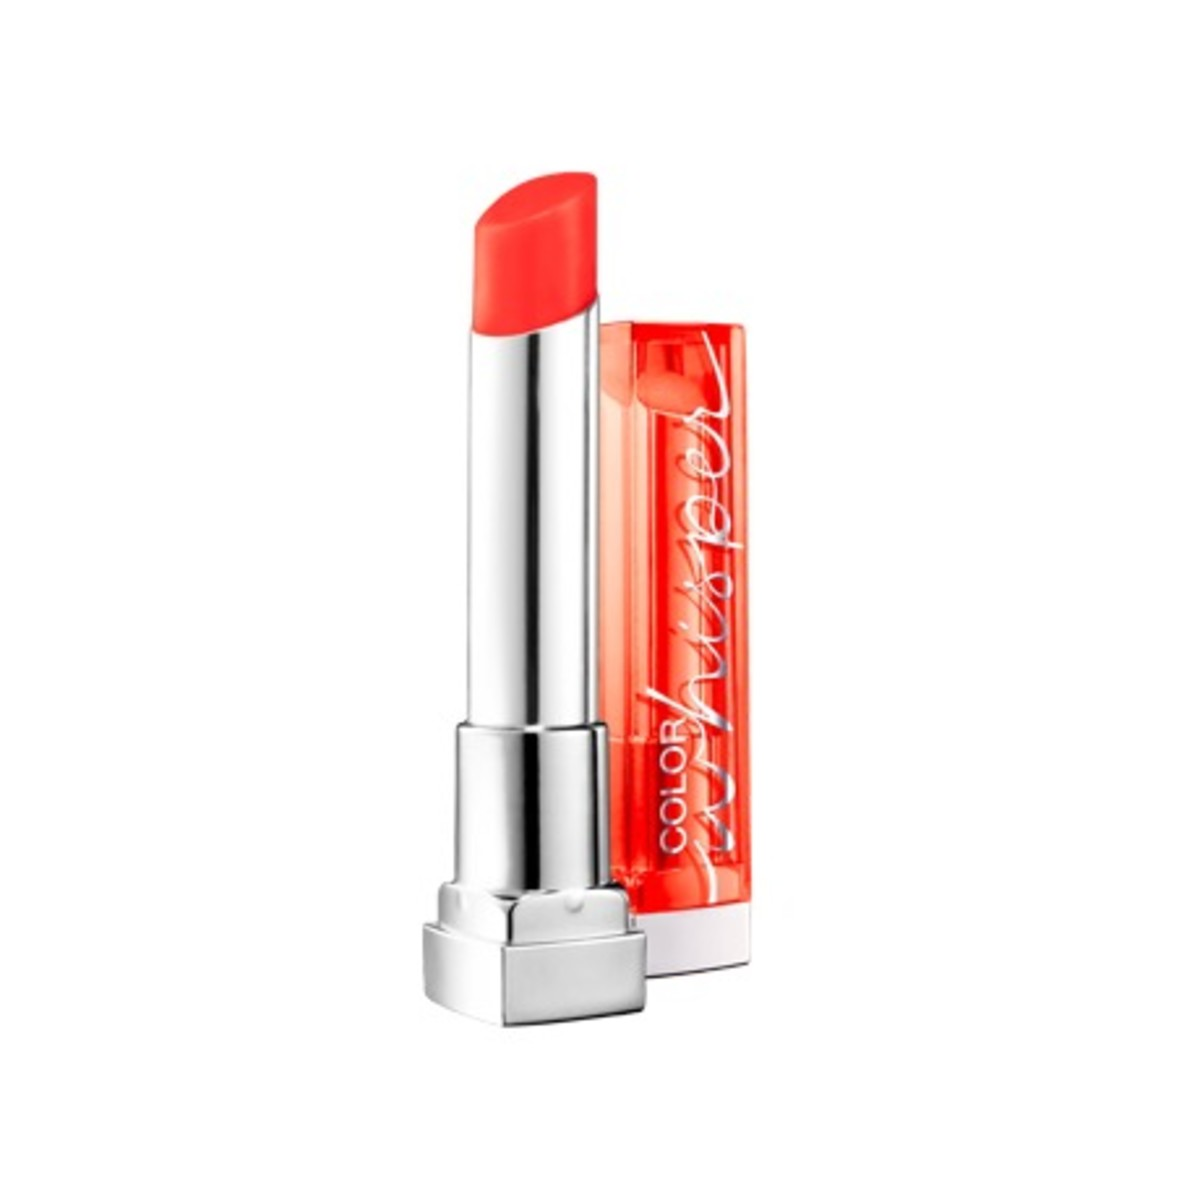 Maybelline Color Whisper Lipstick in Orange Attitude